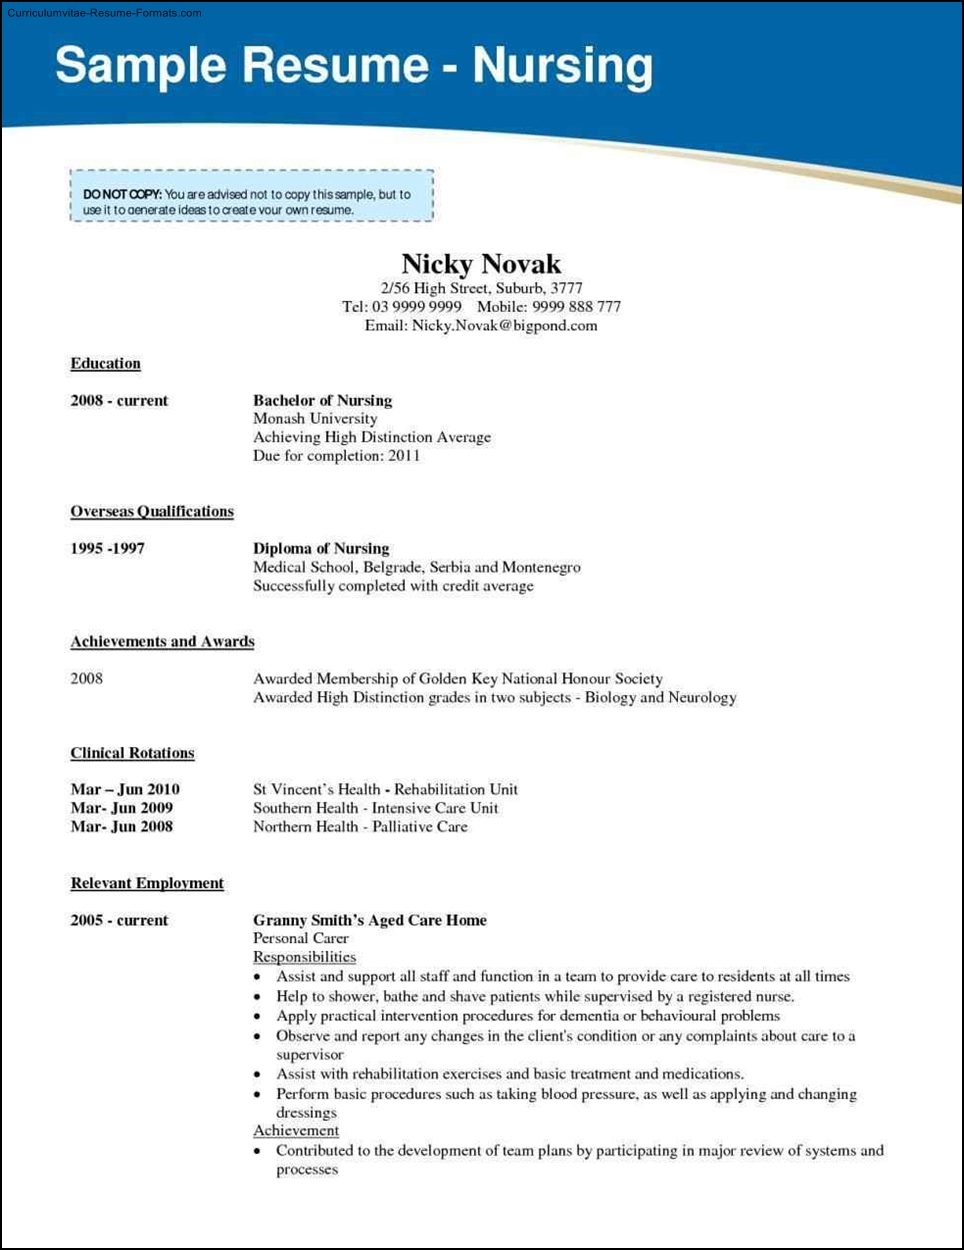 nursing resume recent graduate sample customer service resume nursing resume recent graduate example of new graduate nurse resume school of nursing how to write